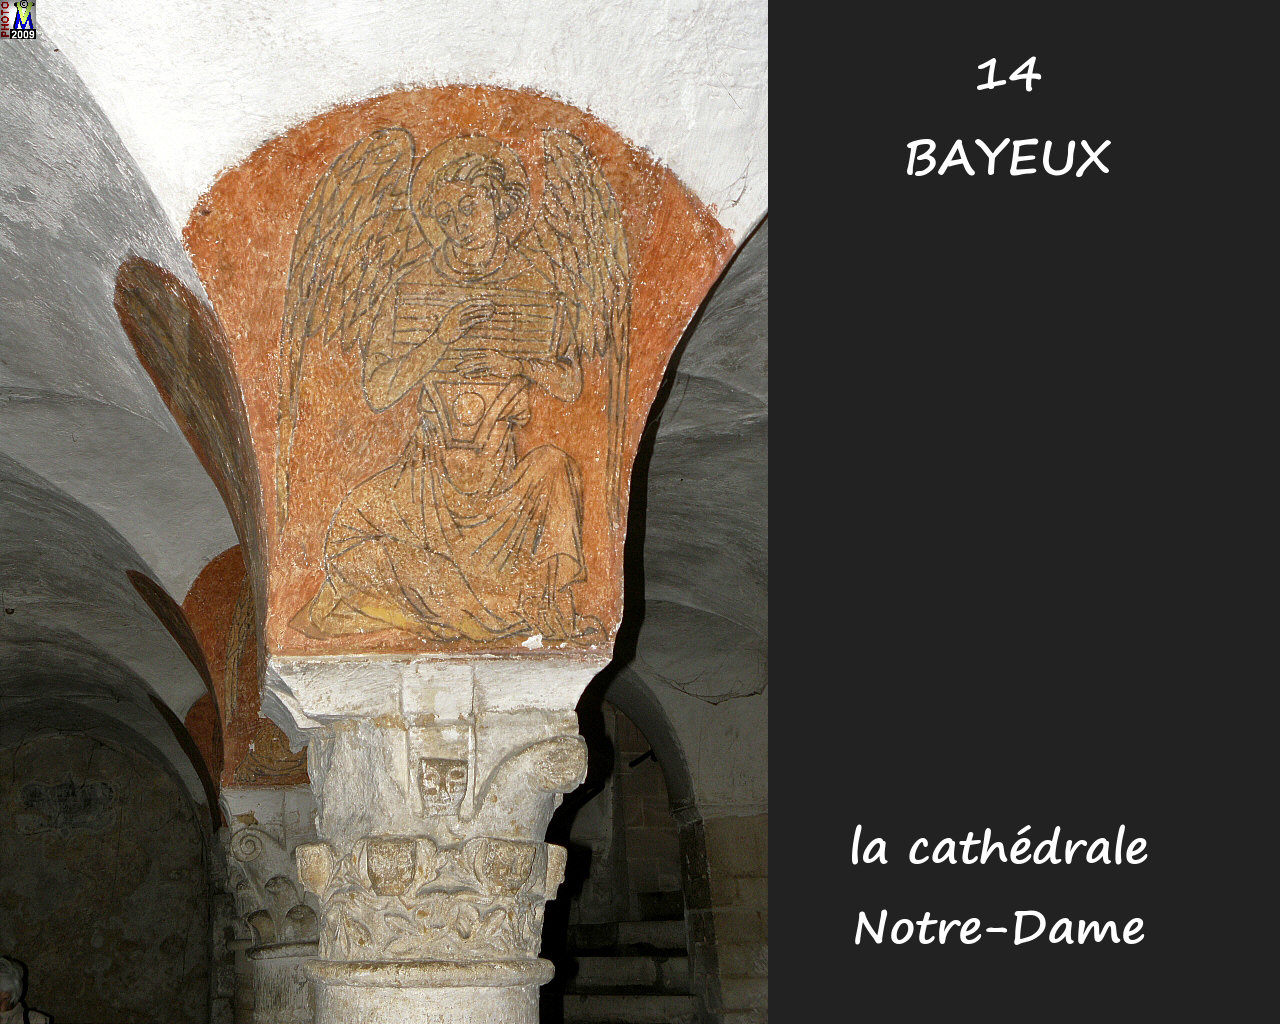 14BAYEUX_cathedrale_312.jpg